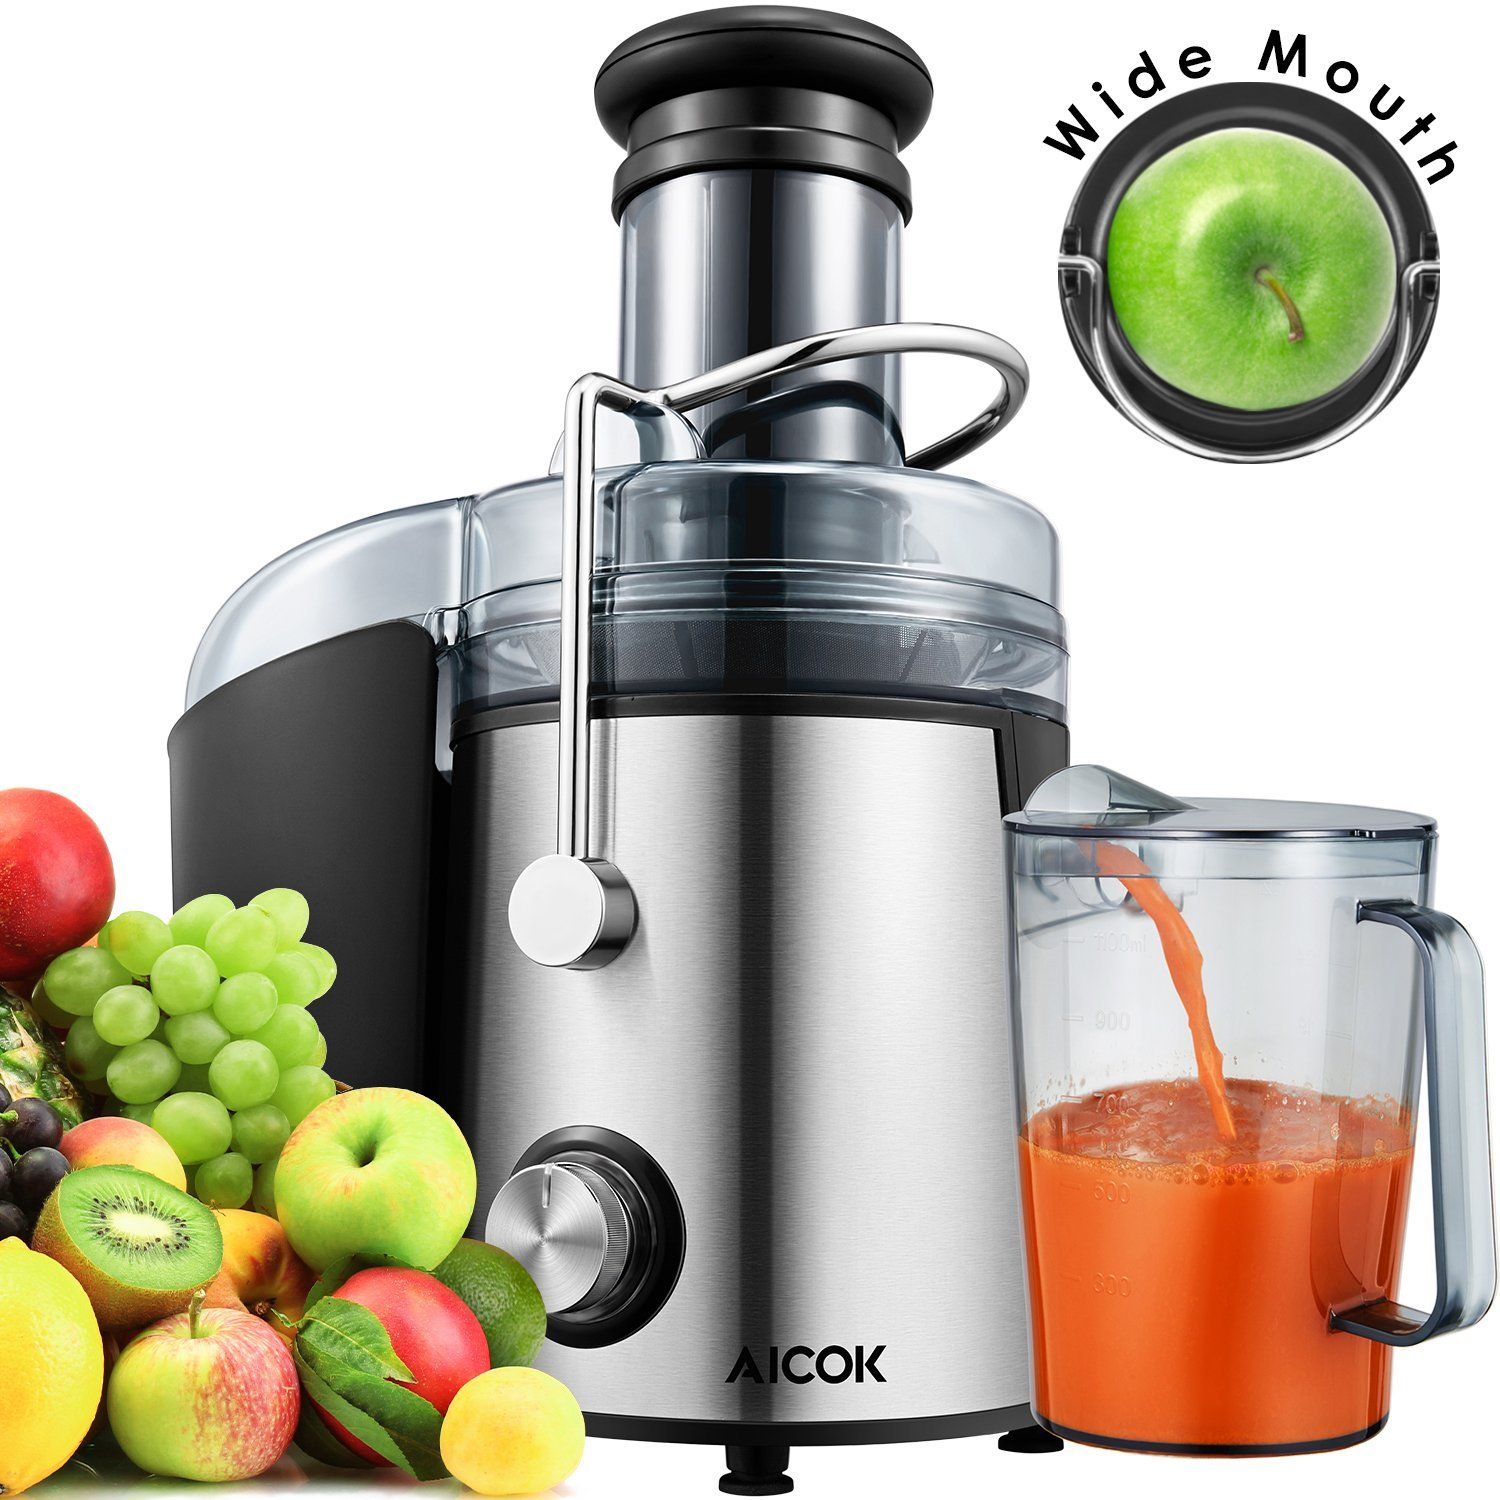 Aicok Wide Mouth 76MM Juice Extractor Centrifugal Juicer Machine